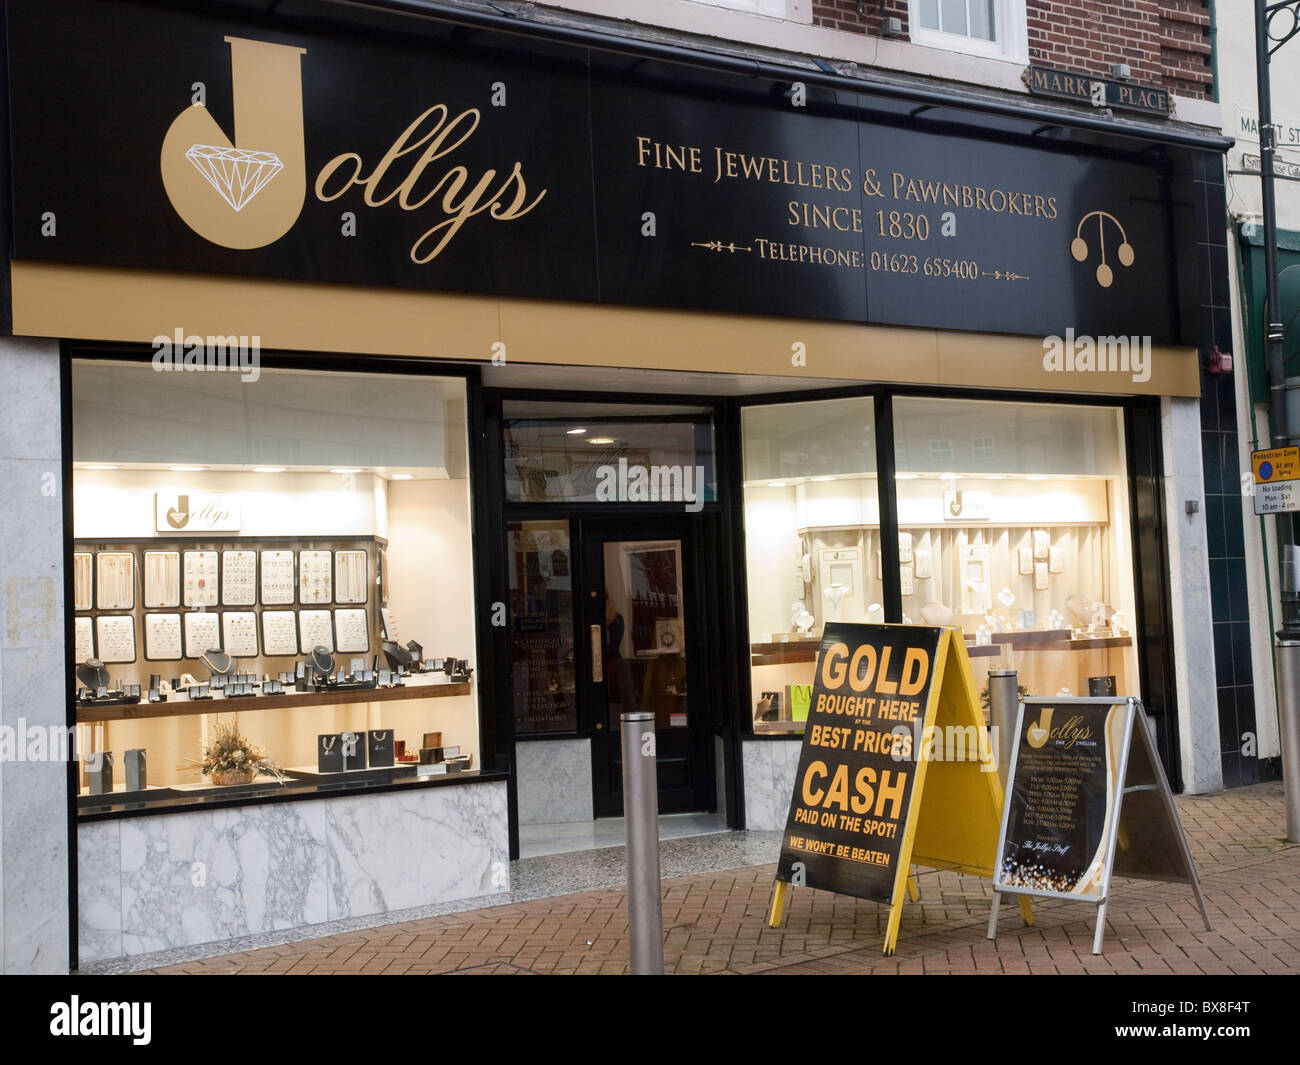 Jolly's Jewellers and Pawnbrokers in Mansfield, Nottinghamshire England UK - Stock Image